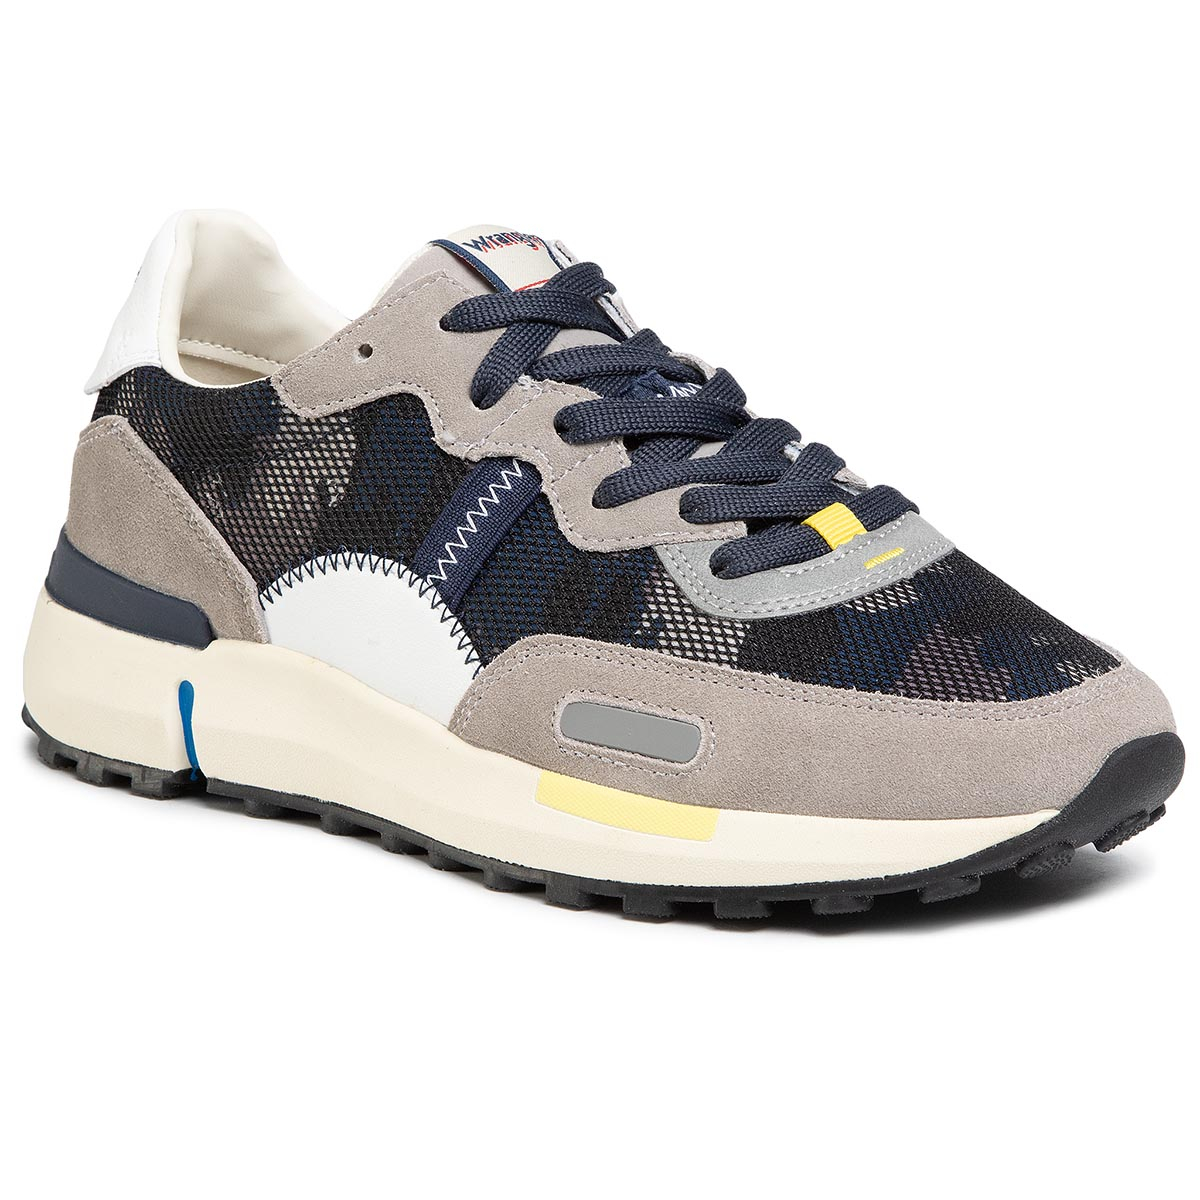 Sneakers WRANGLER - Iconic 70 Ns WM01121A Camouflage 099 New